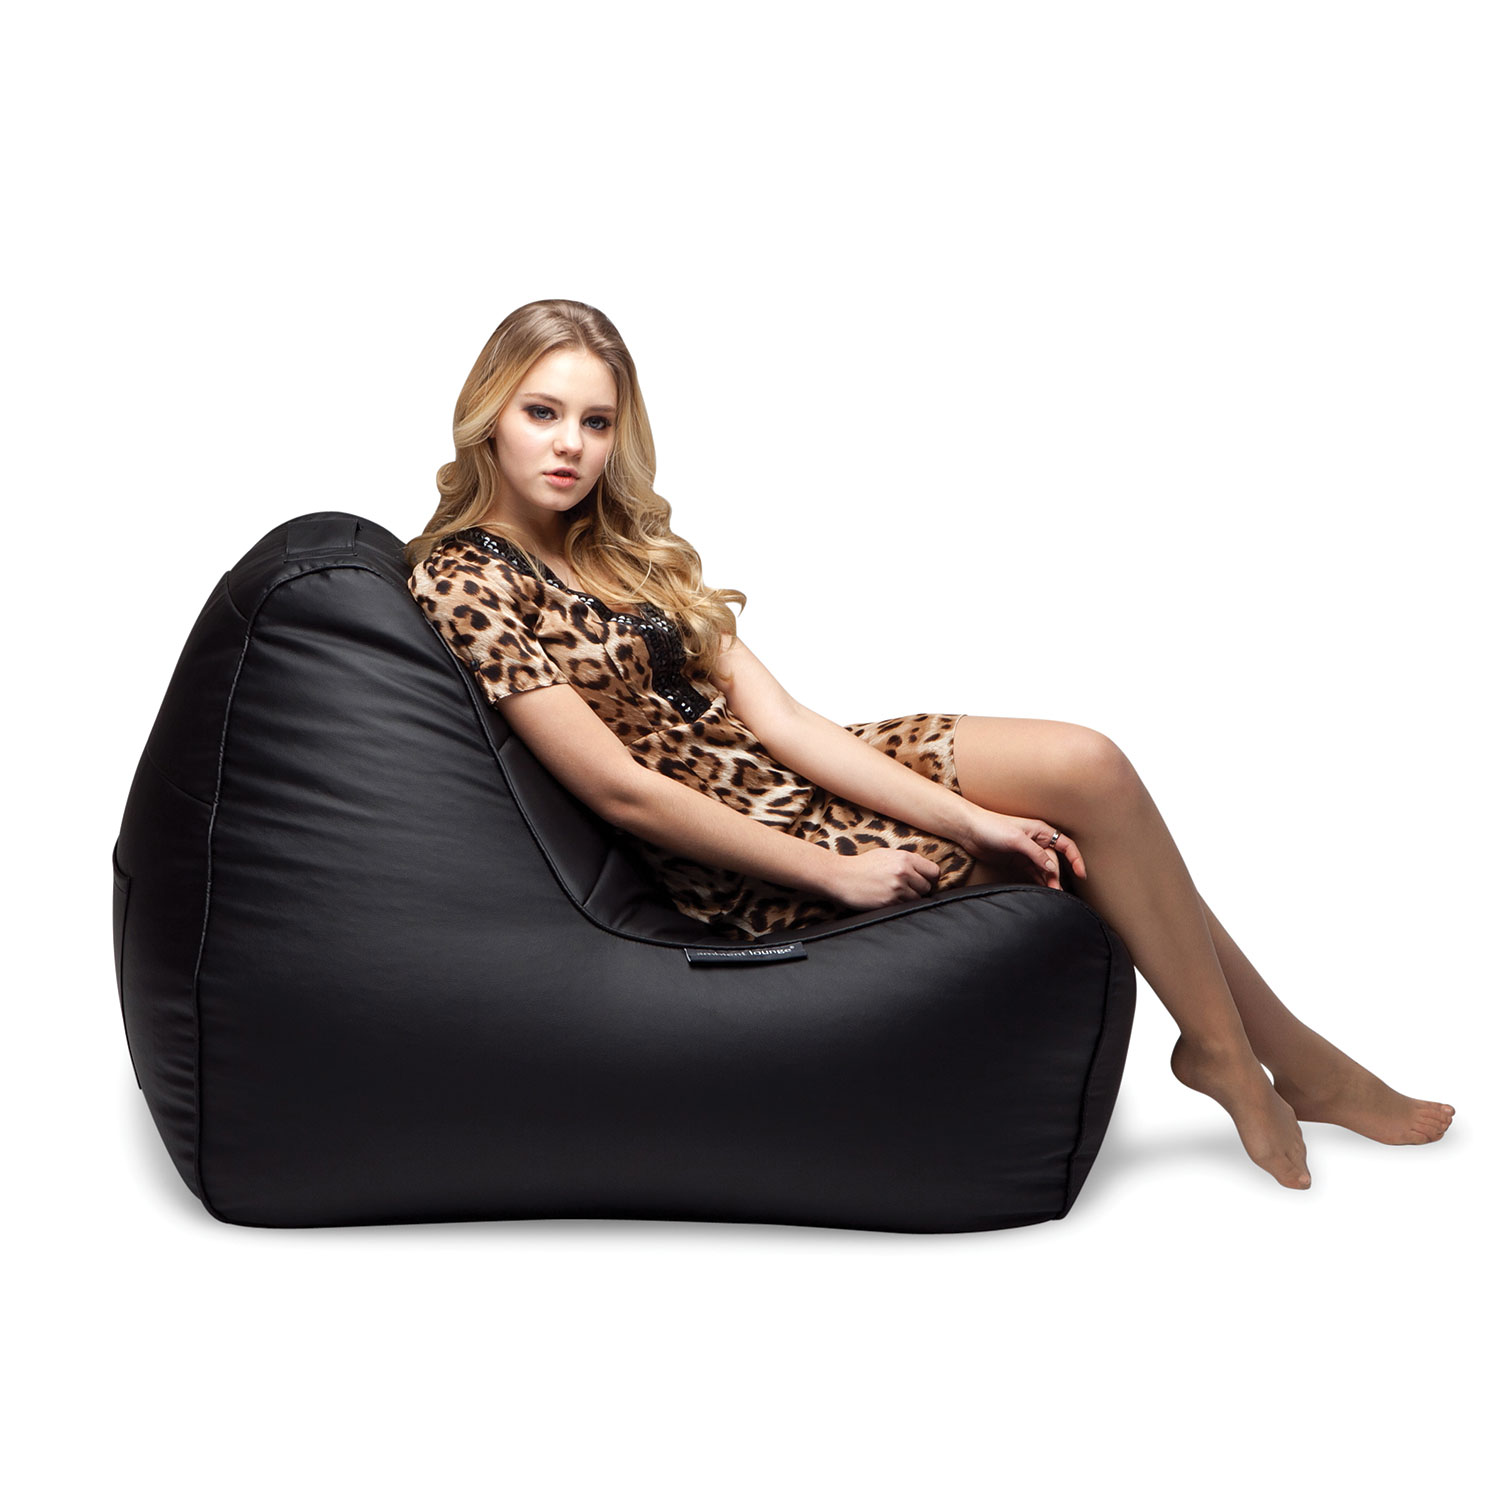 couch and chair covers nz pine dining chairs uk classic nero lounger bean bag | tivoli new zealand